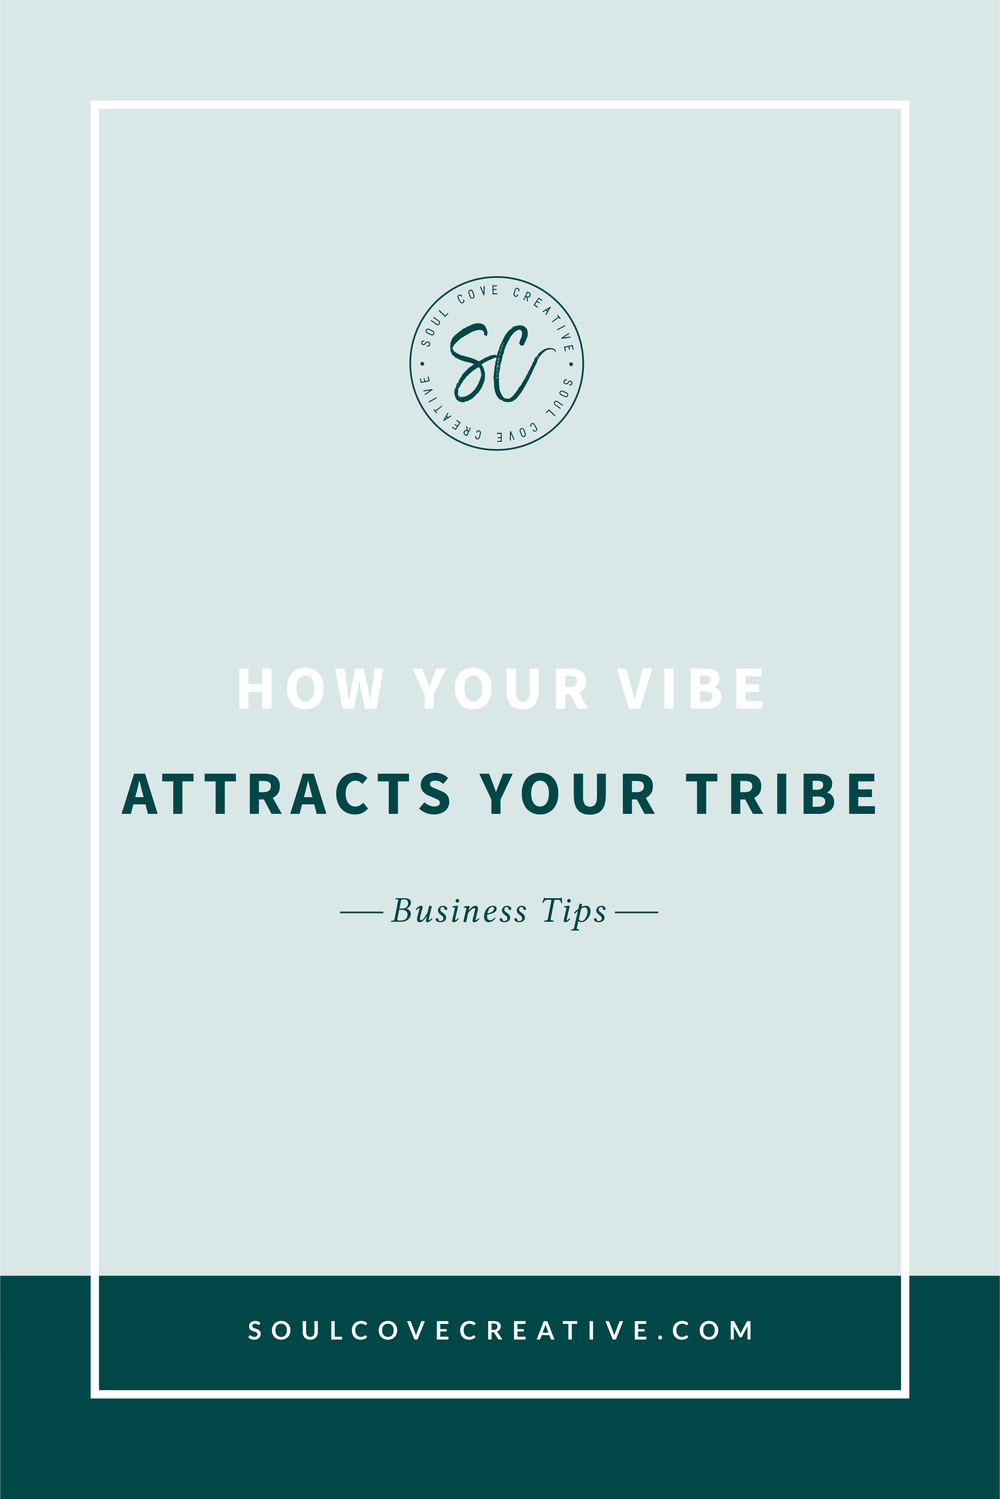 How your vibe attracts your tribe